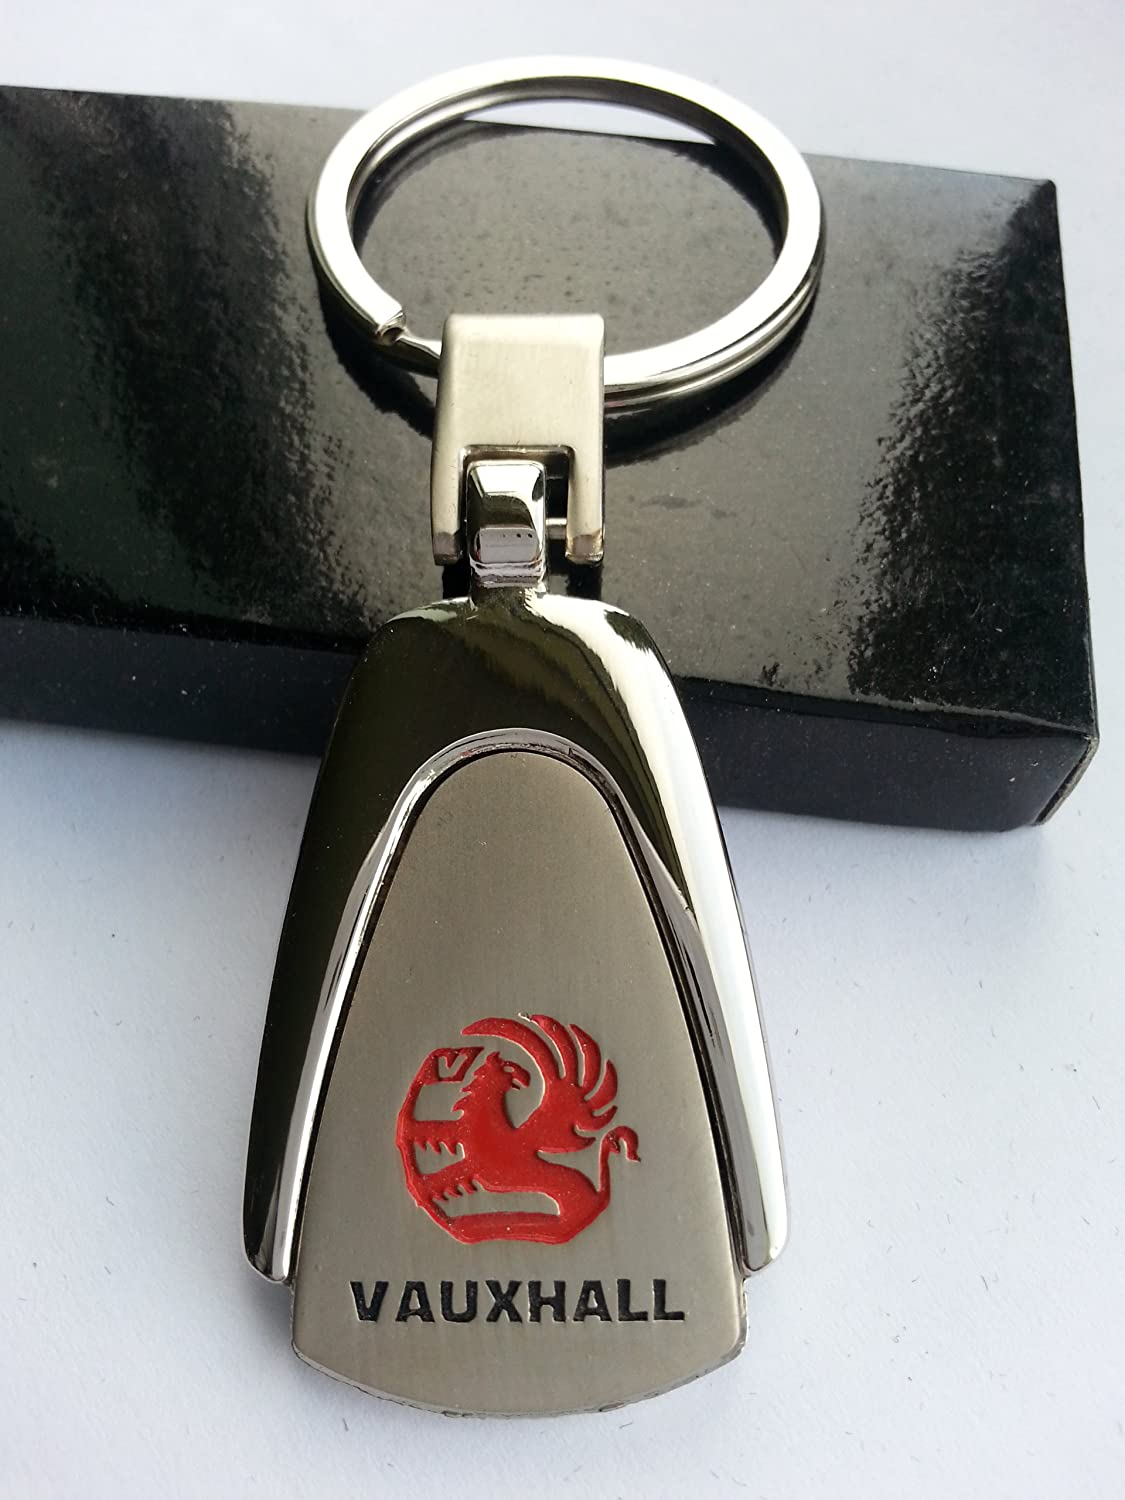 VAUXHALL HIGH QUALITY METAL CAR KEYRING LSBC